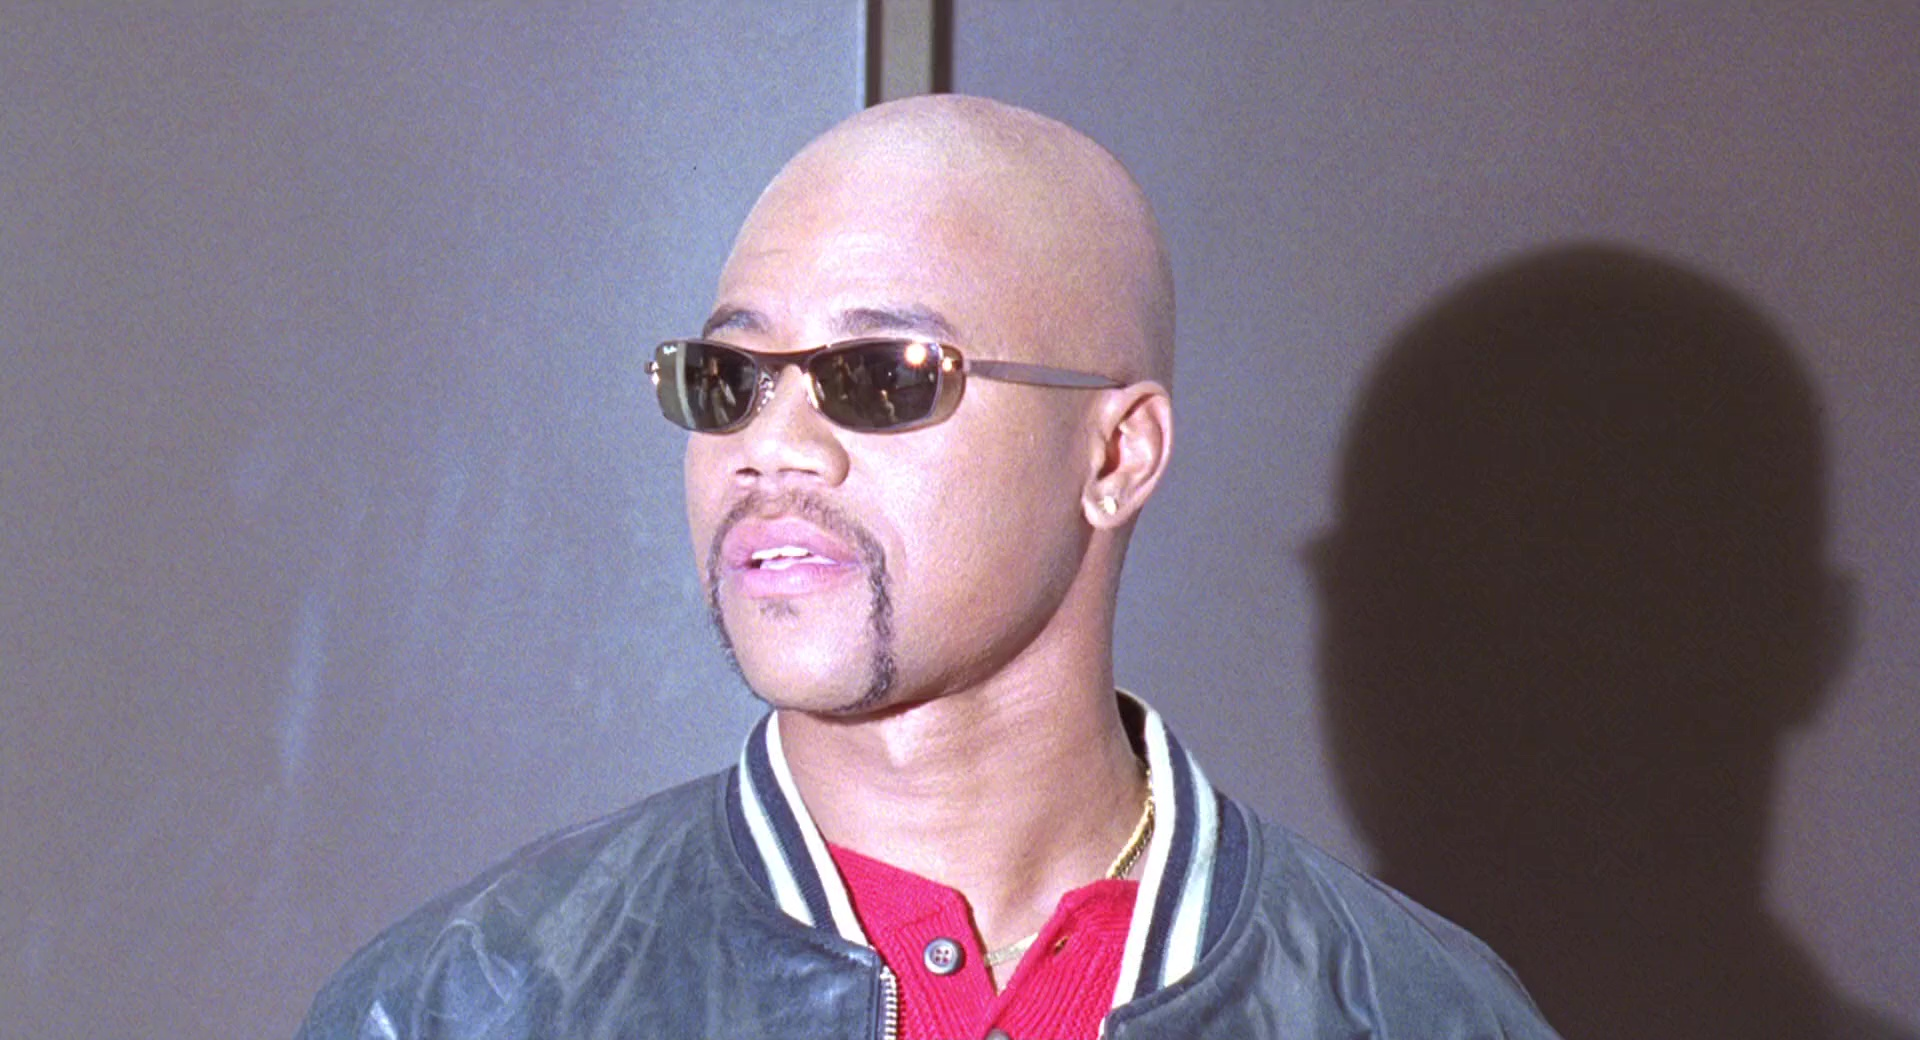 Ray-Ban Men's Sunglasses Worn by Cuba Gooding Jr  in Jerry